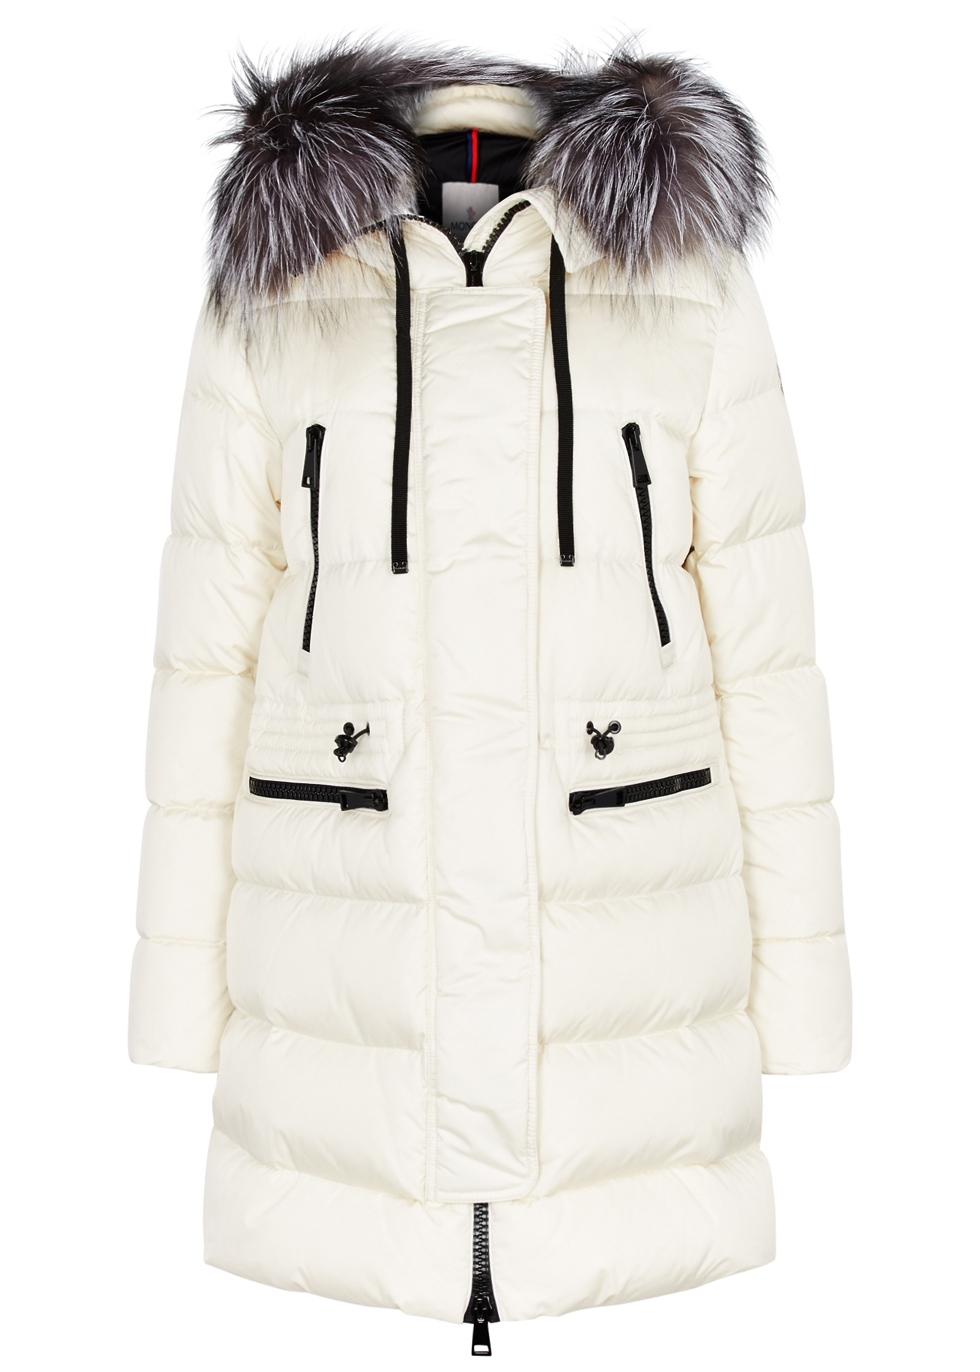 Aphrotiti cream fur-trimmed shell coat - Moncler